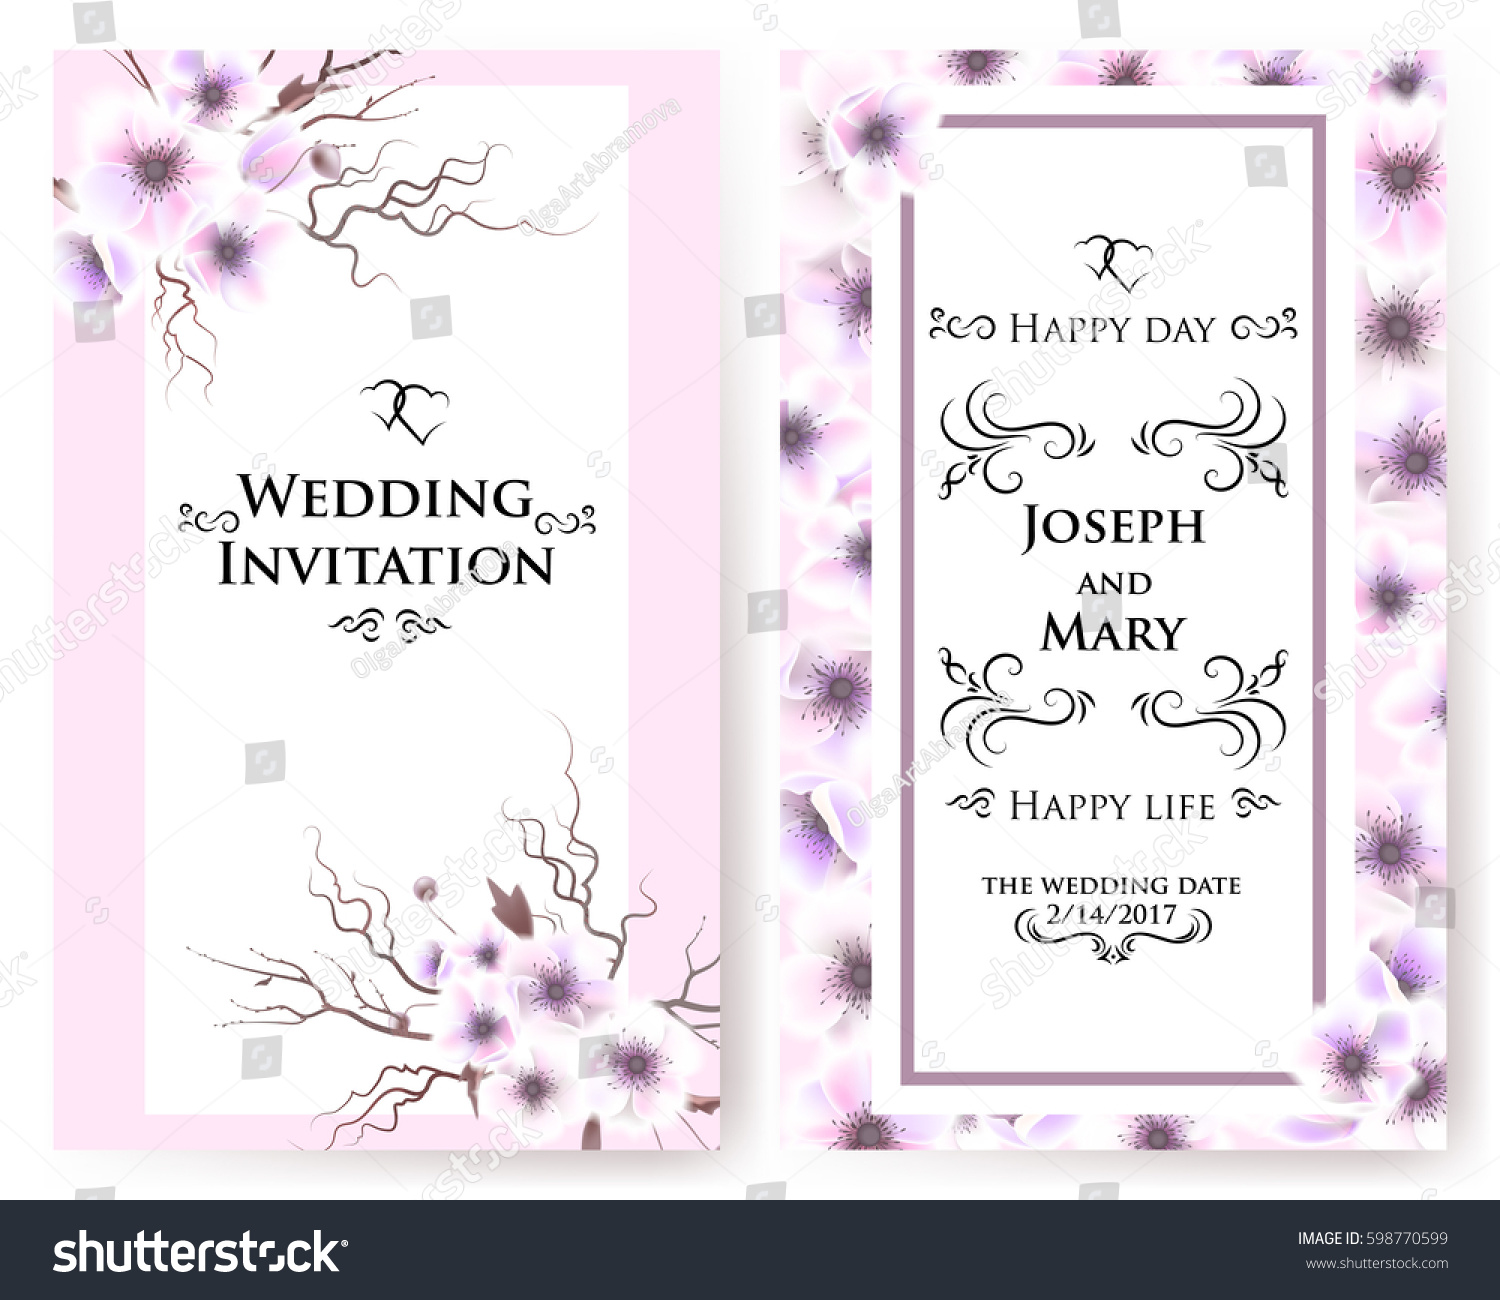 Save The Date Cards Birthday Gallery Free Birthday Cards